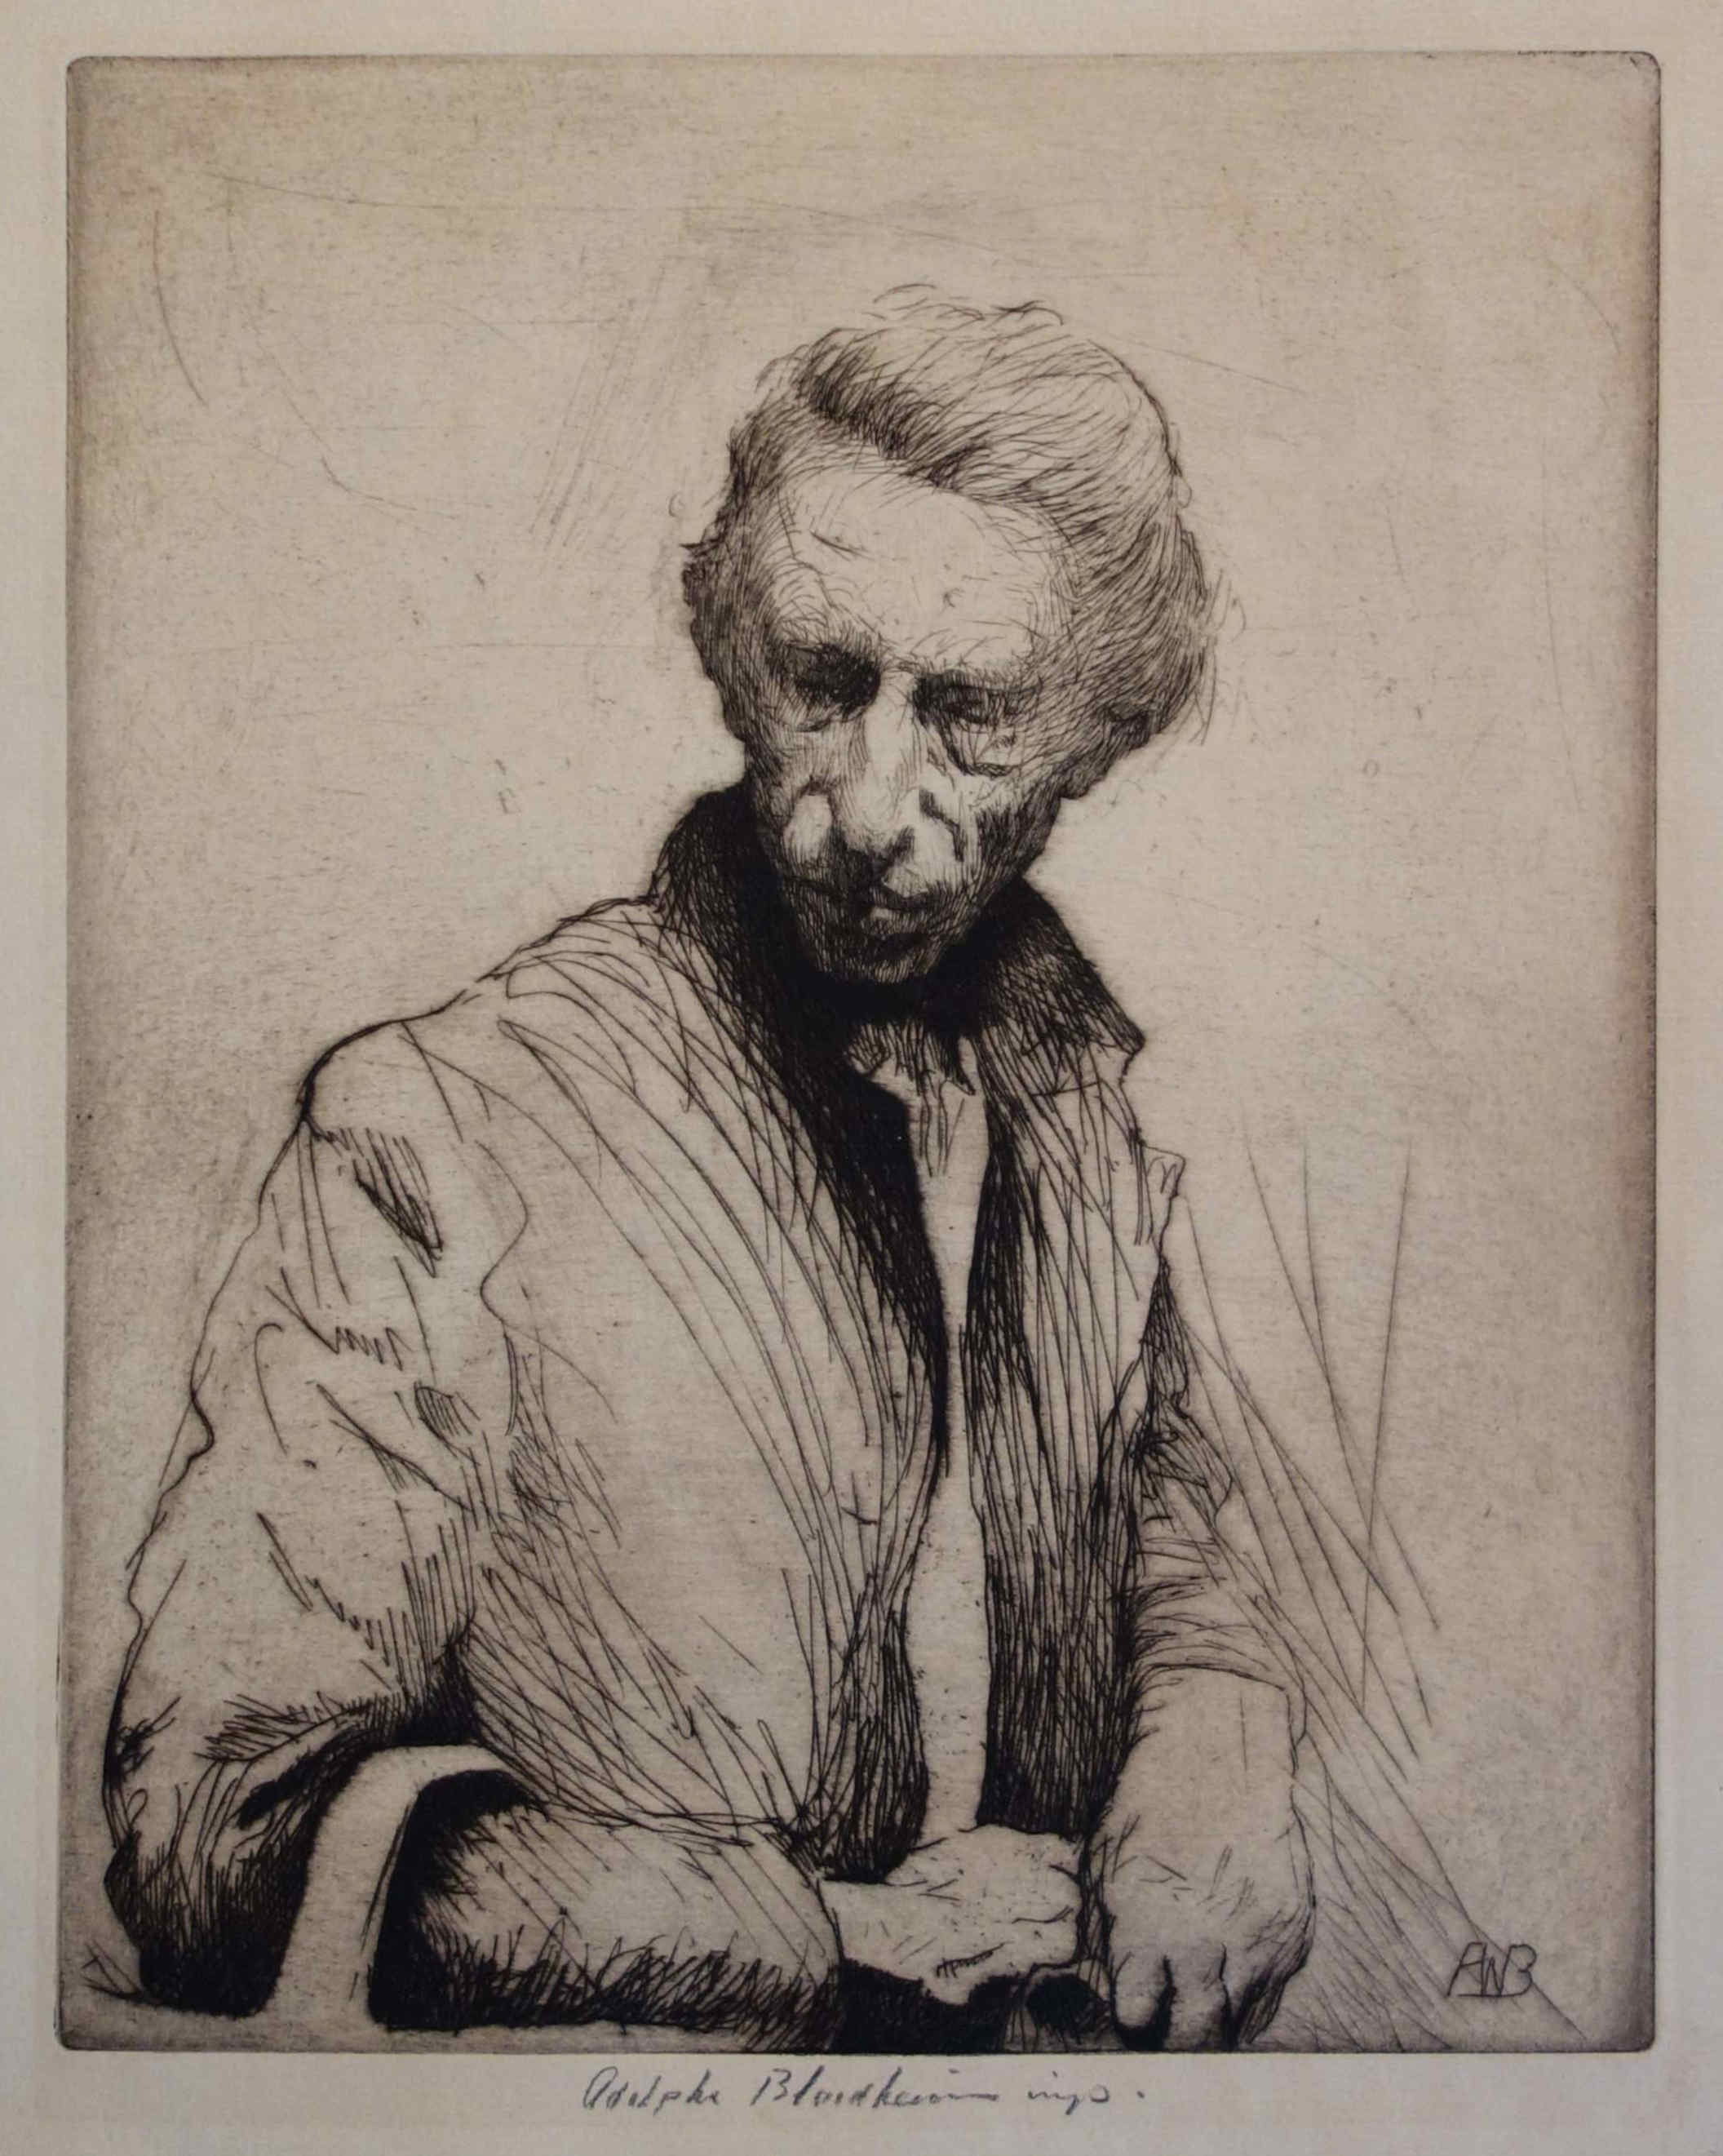 adolphe blondheim etching